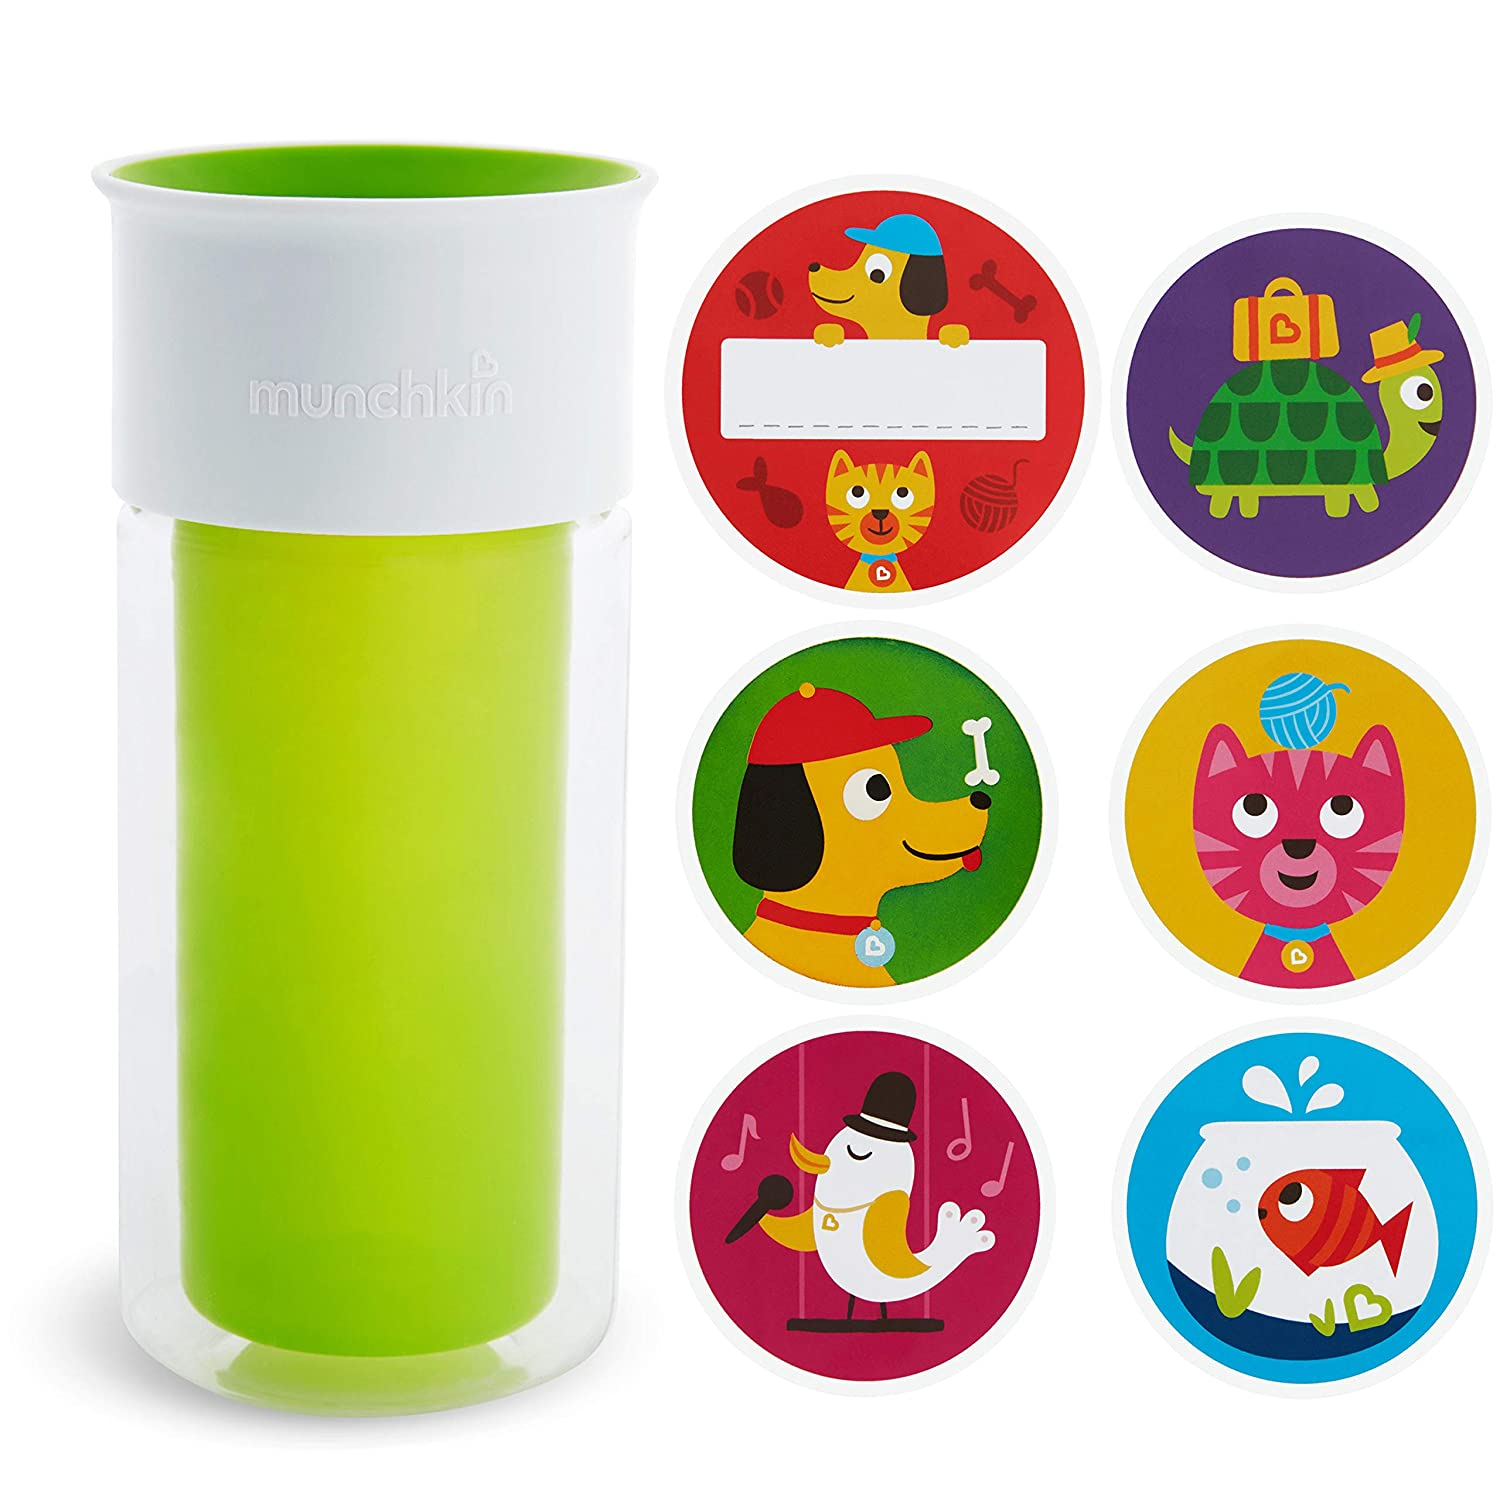 Munchkin Miracle 360 Insulated Sippy Cup, Includes Stickers to Customize Cup, 9 Ounce, Green